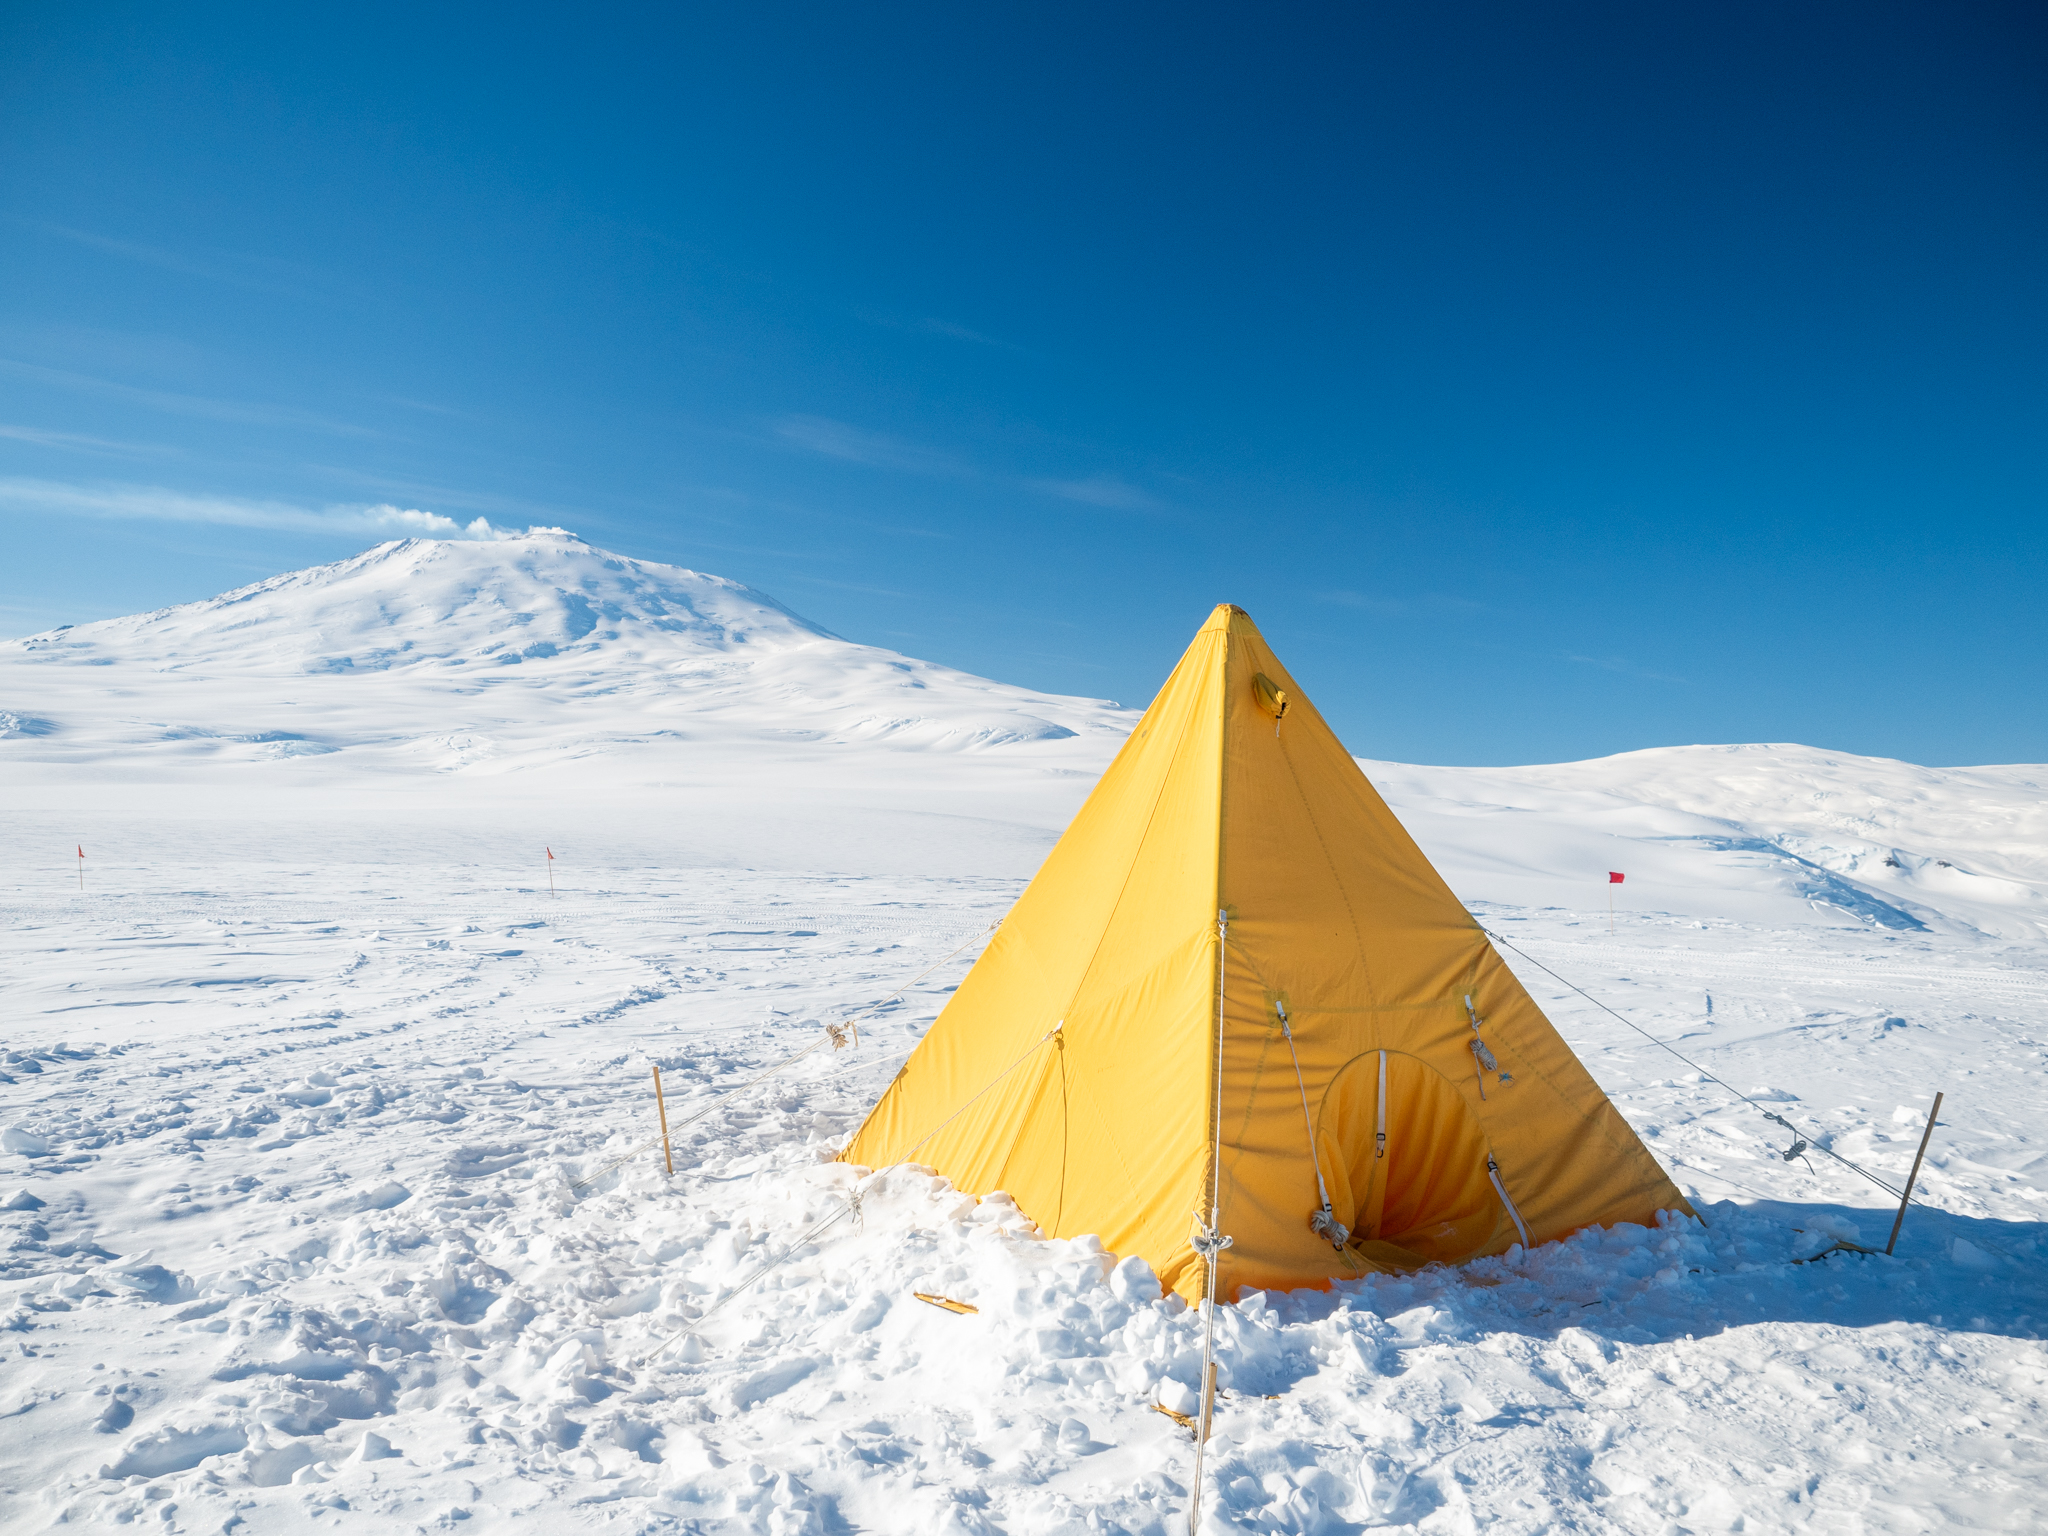 A Scott tent pitched on the icy plateau.